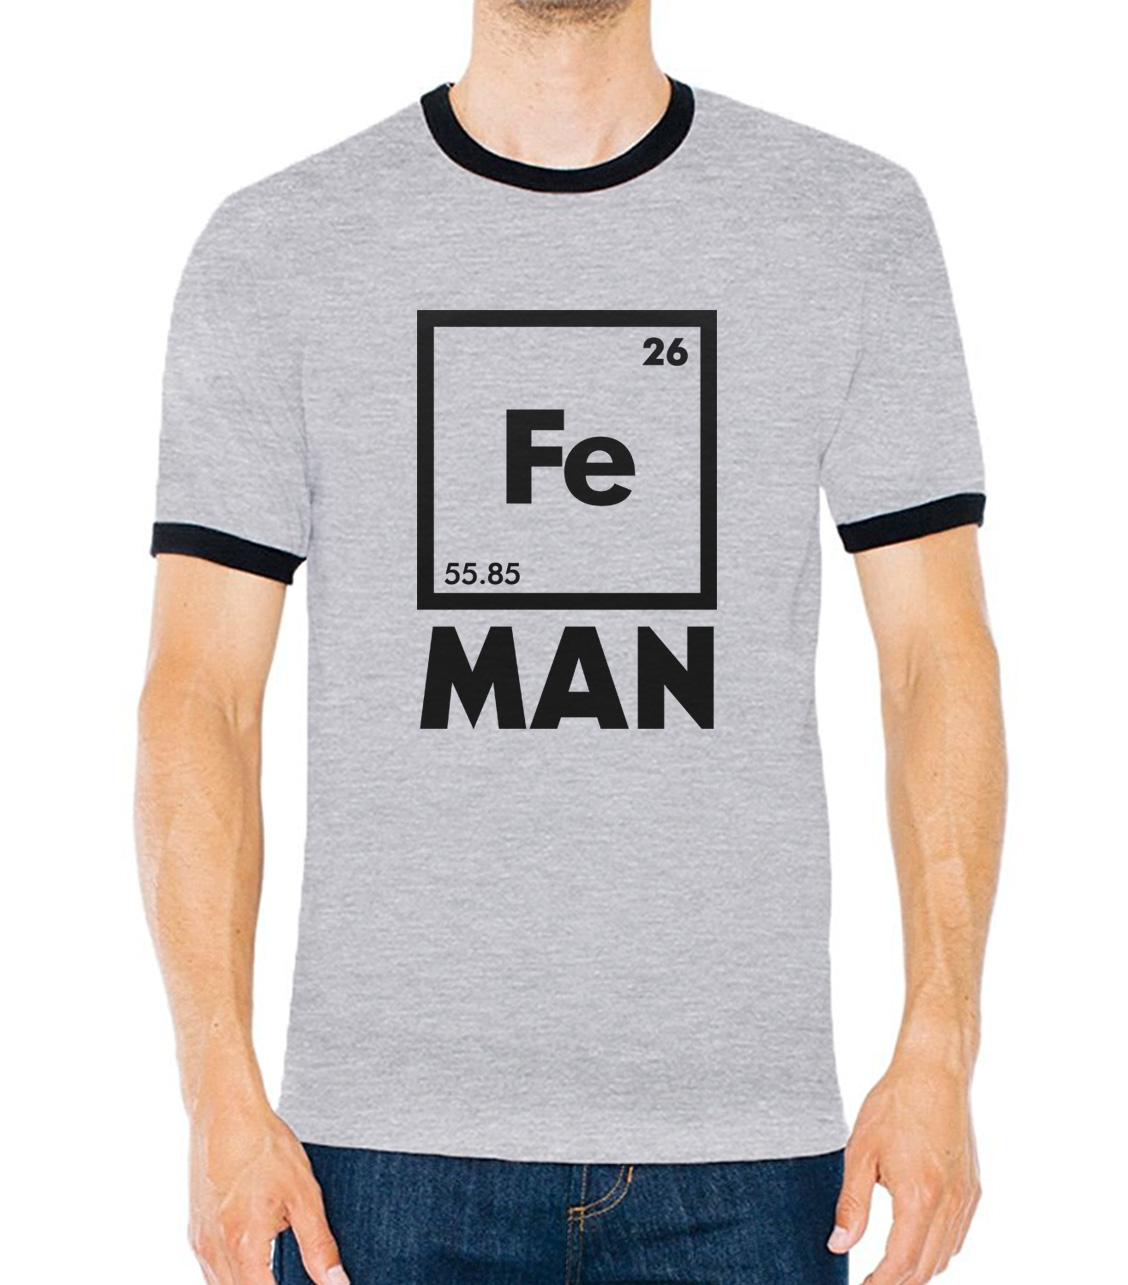 Table english pub table antique periodic table product on alibaba com - Iron Science Chemistry Fe Periodic Table T Shirts Contrast Collar Hit Color Camisetas Men 2017 Funny